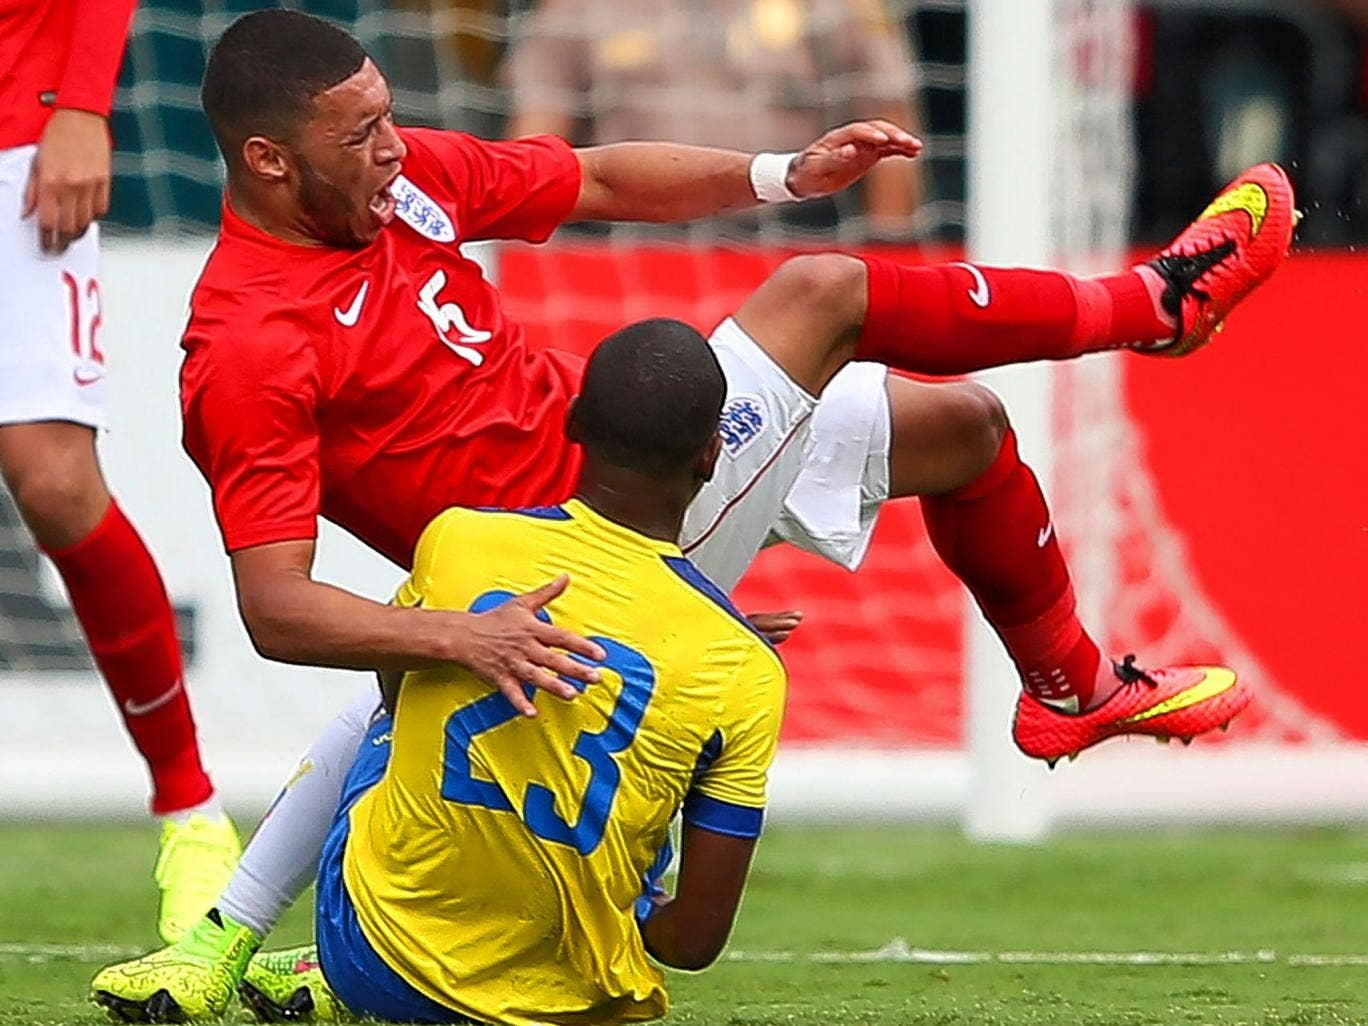 Alex Oxlade-Chamberlain goes down in pain under a challenge from Carlos Gruezo at the Sun Life Stadium in Miami yesterday